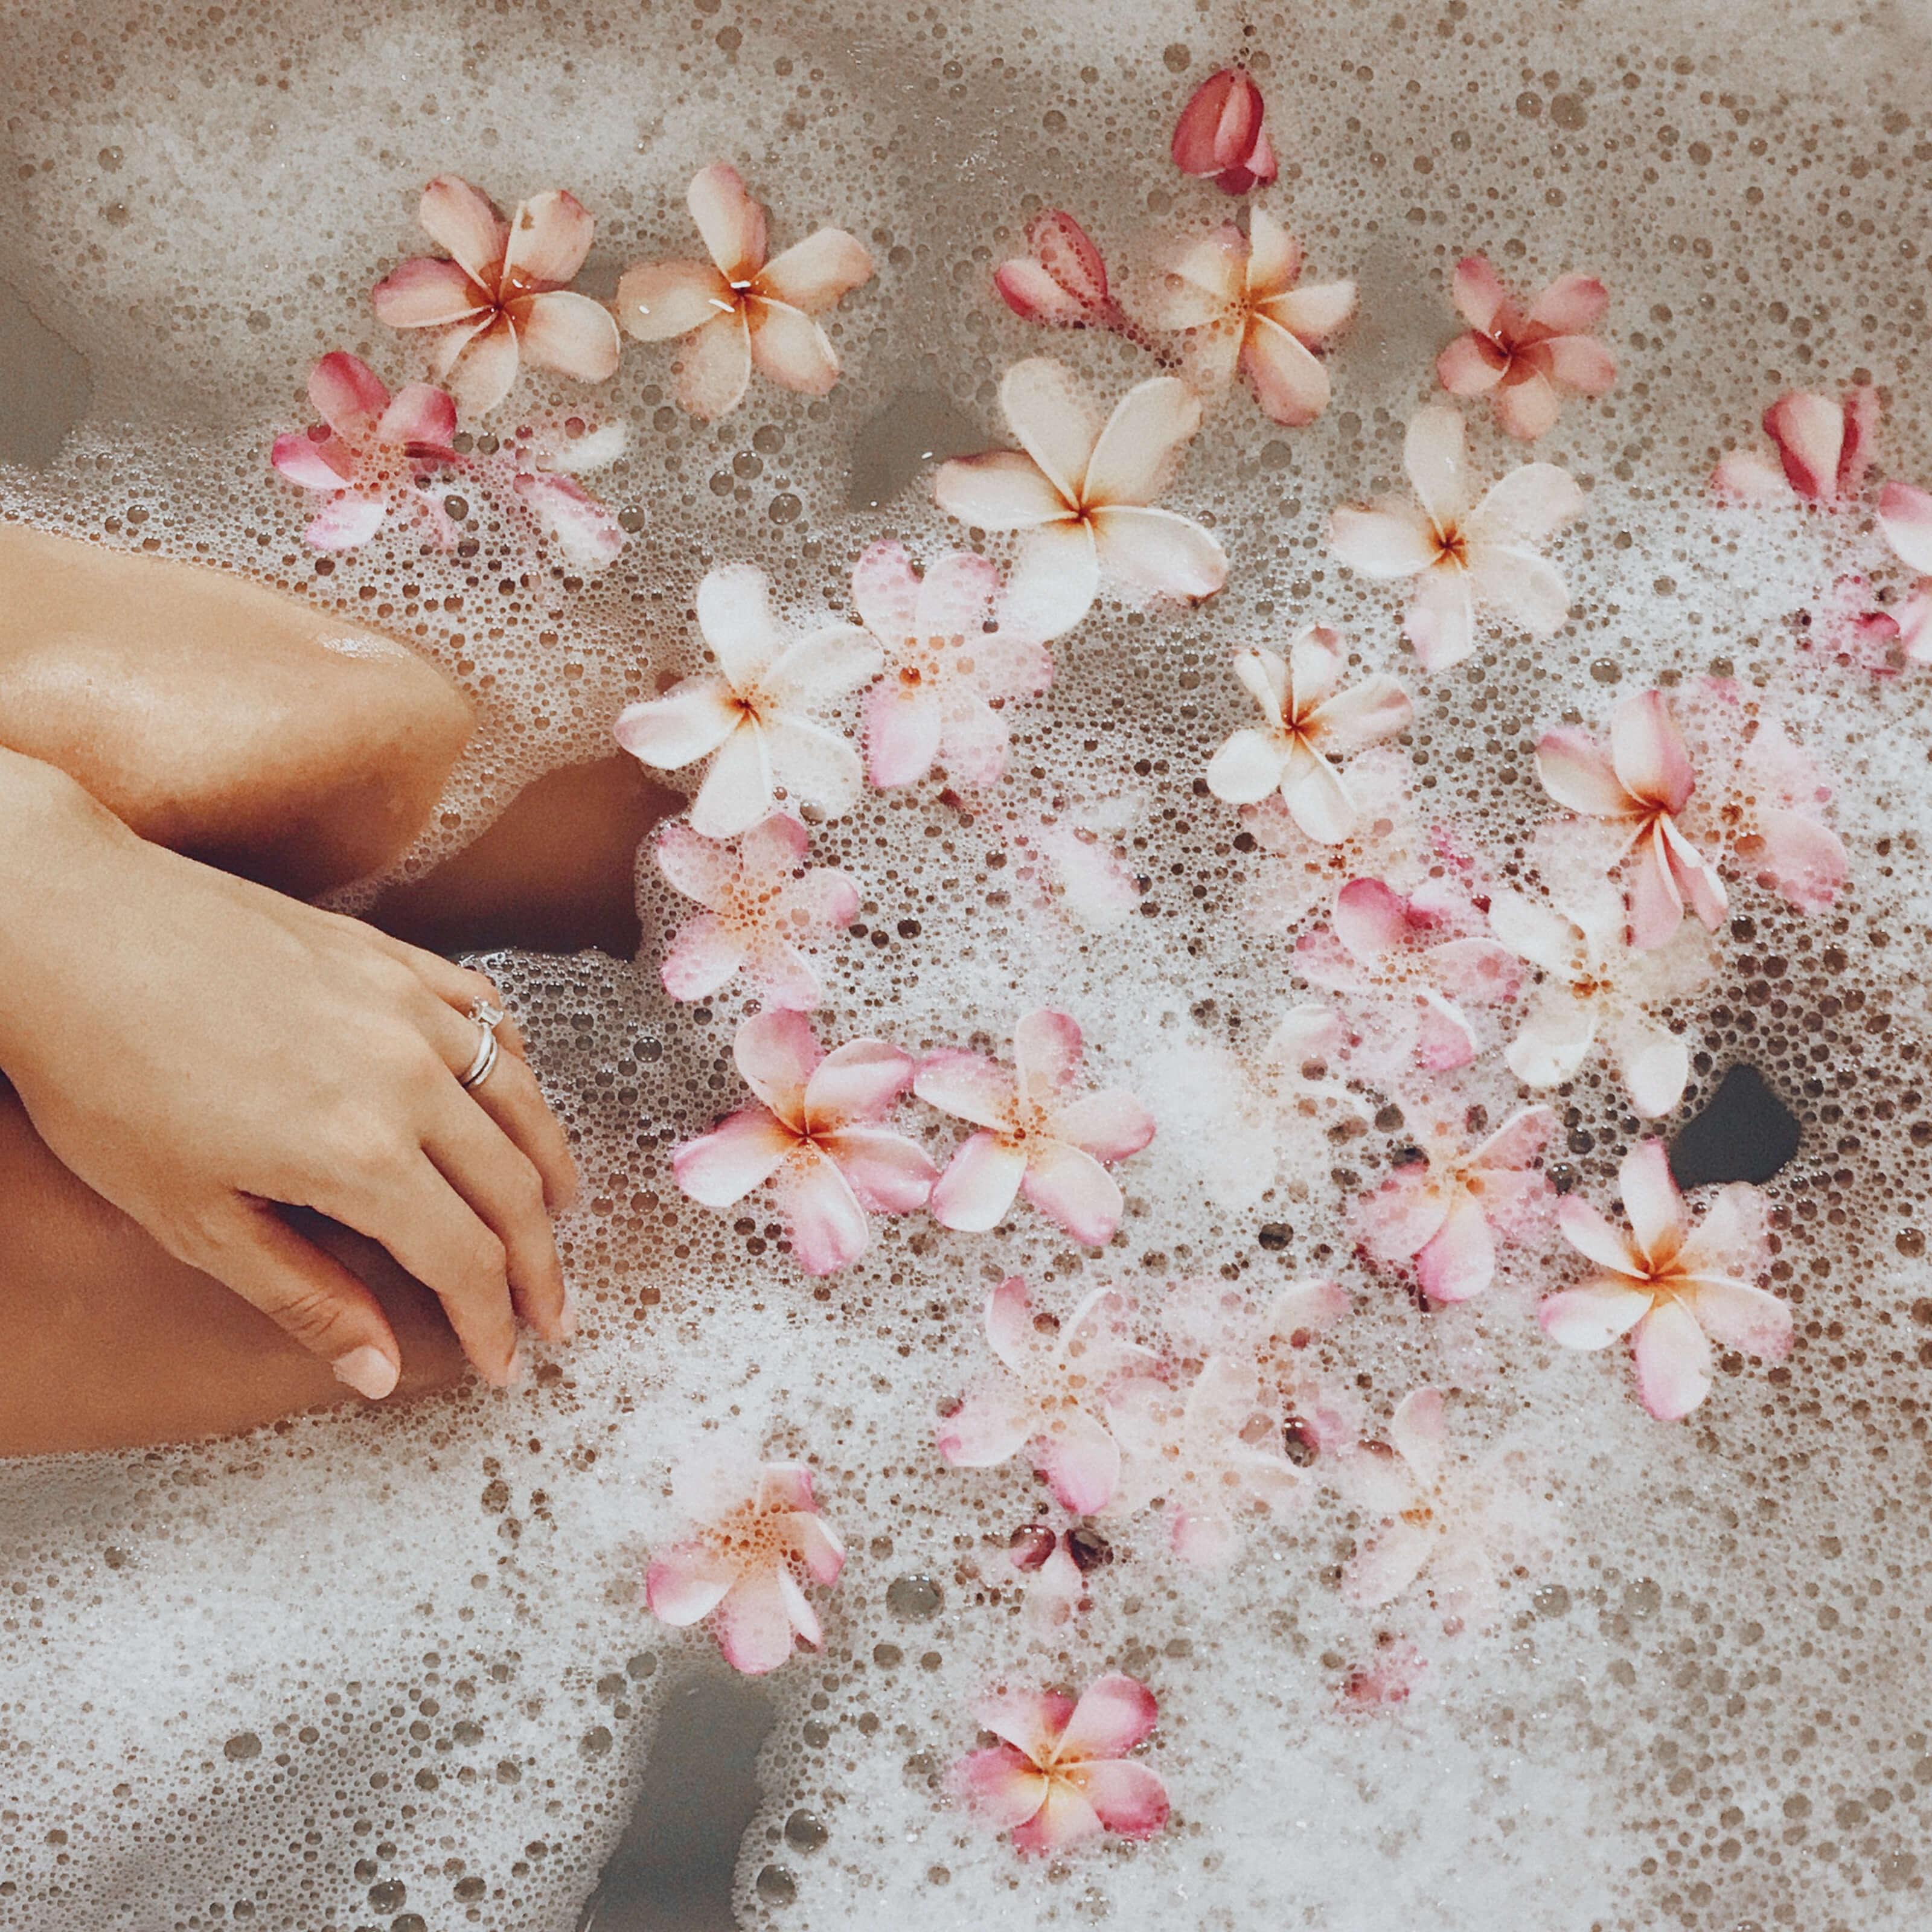 bath tub, flower petals, soap bubbles, woman's hand and legs